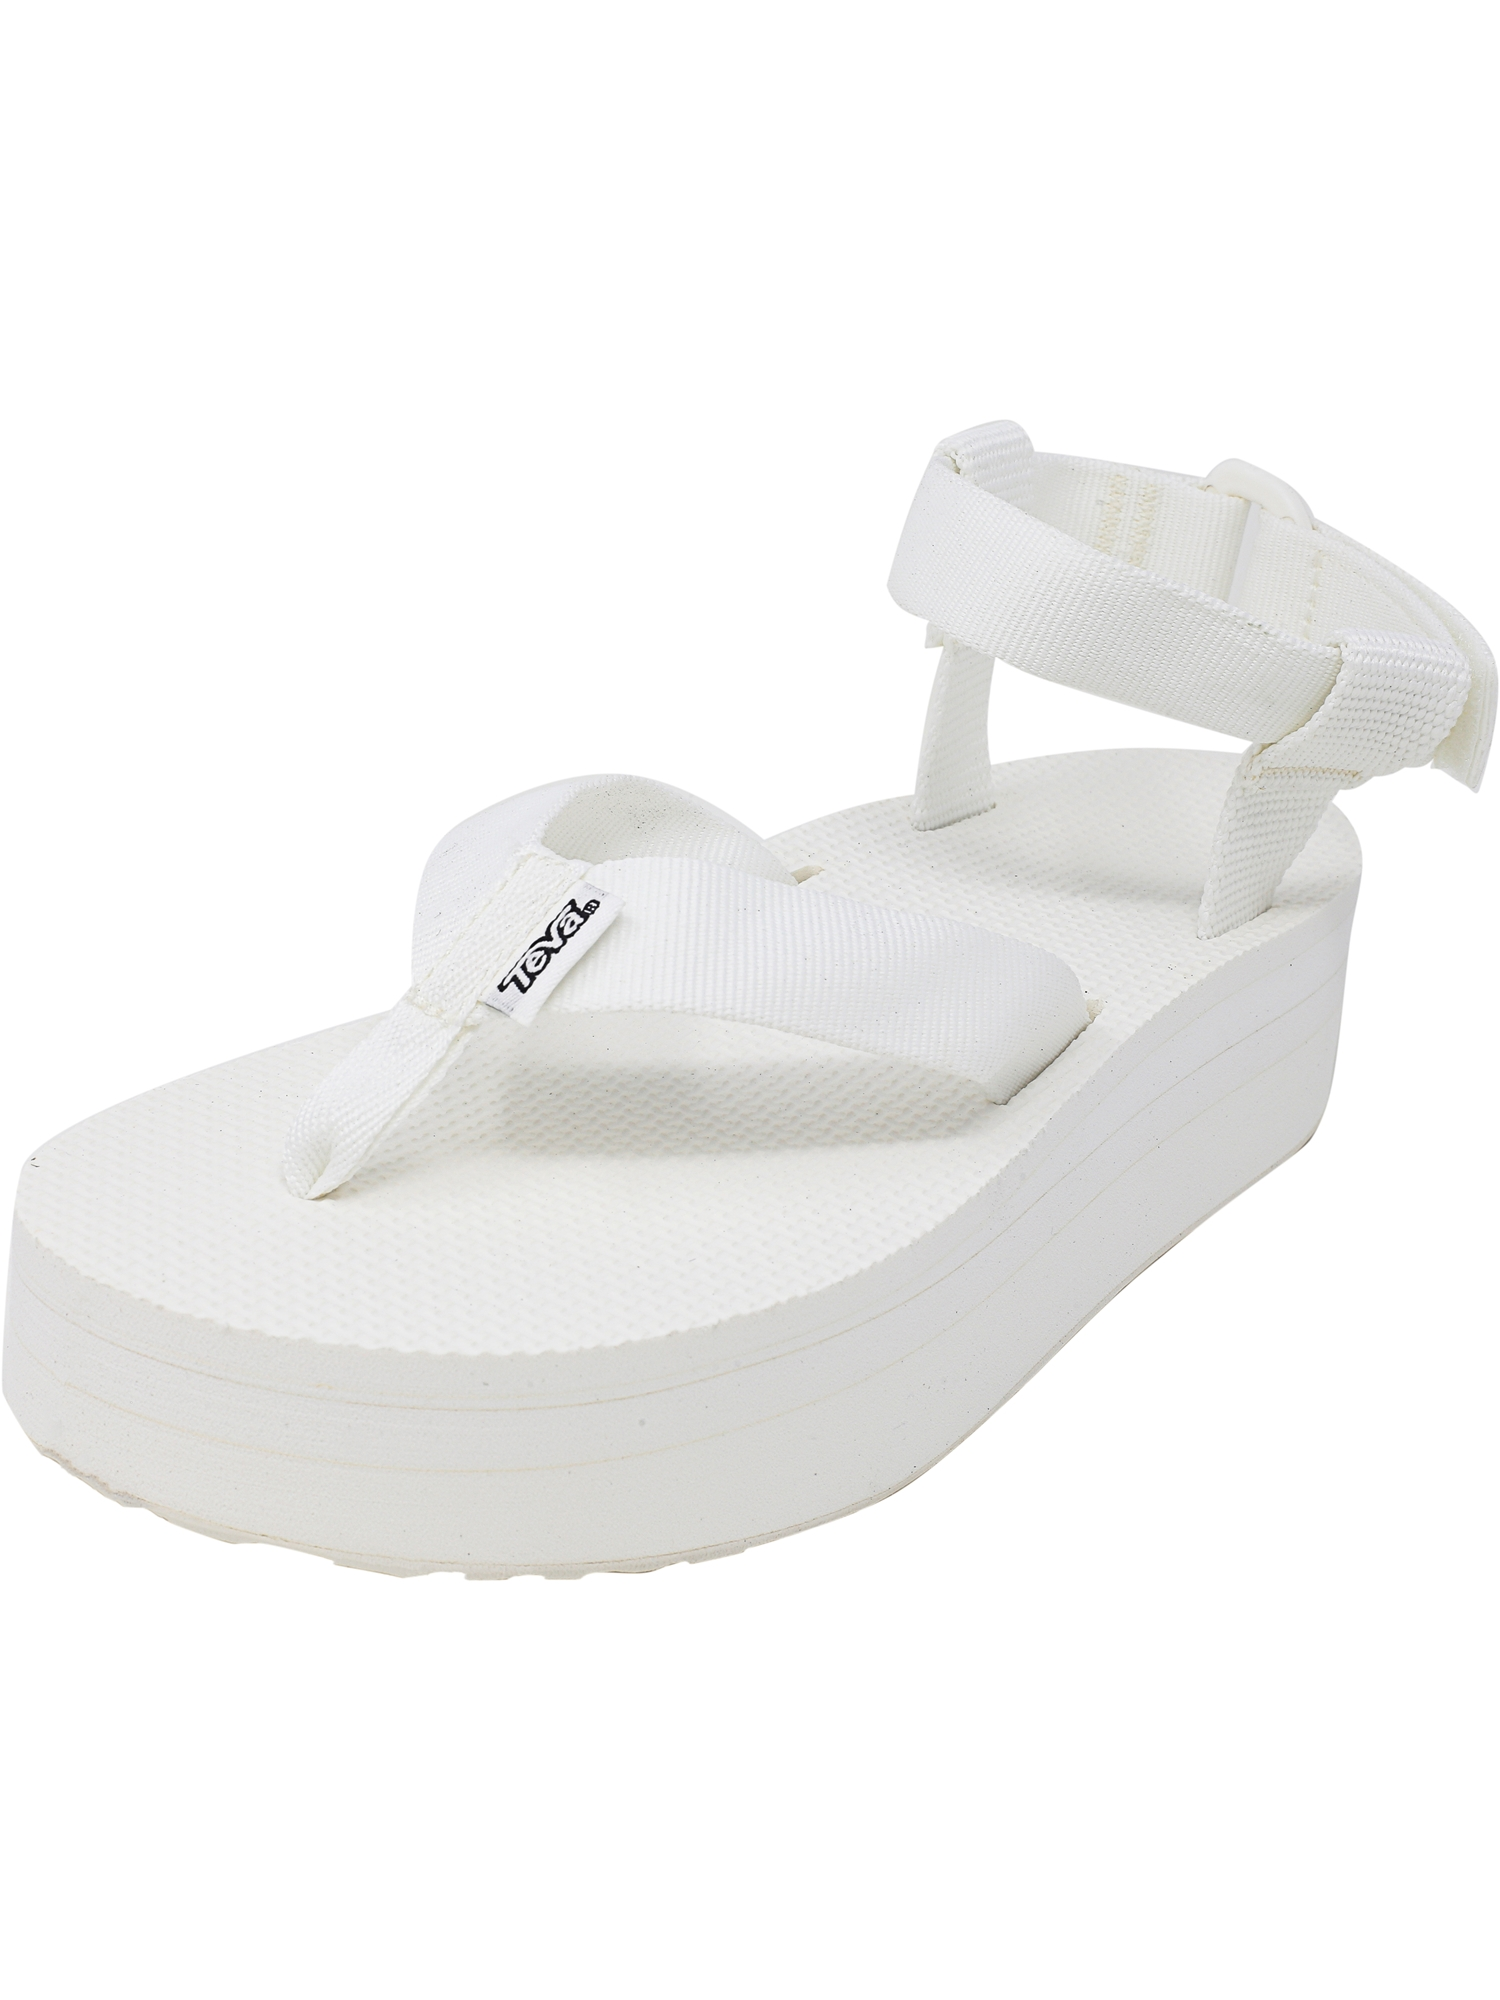 2b6d9facac03 teva flatform review Teva Women s Flatform Sandal White   Orange Ankle-High  - 9M